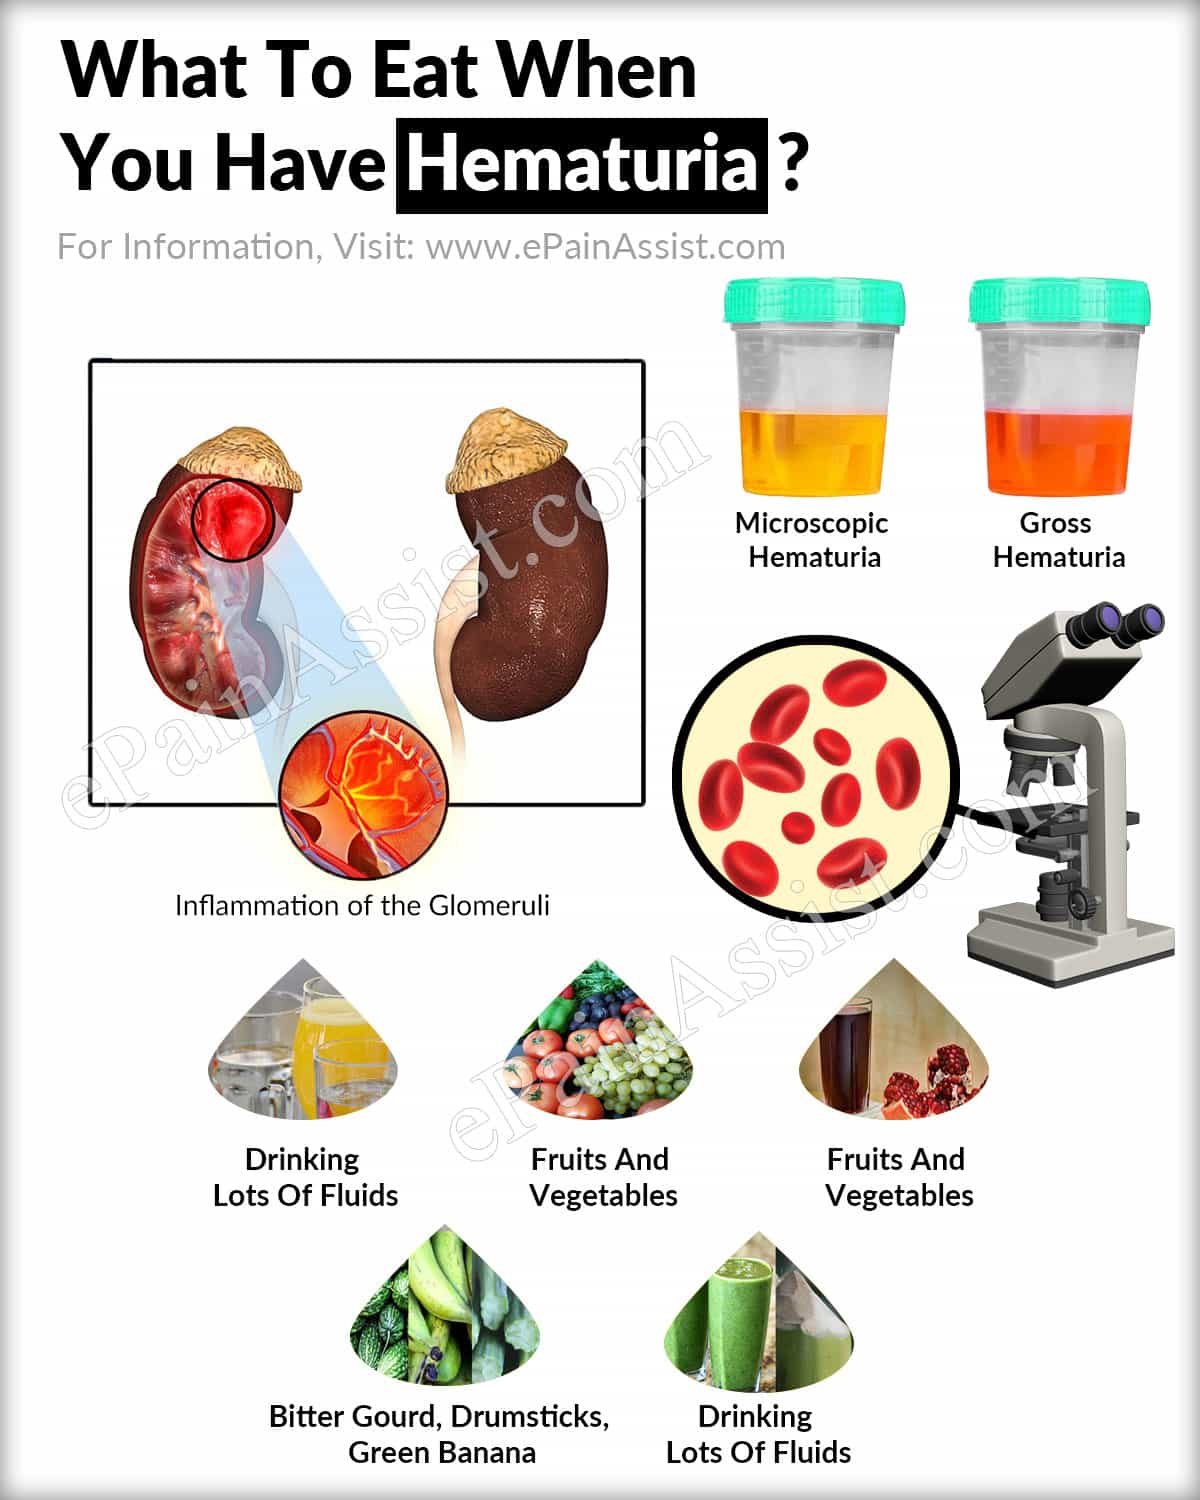 What To Eat When You Have Hematuria?